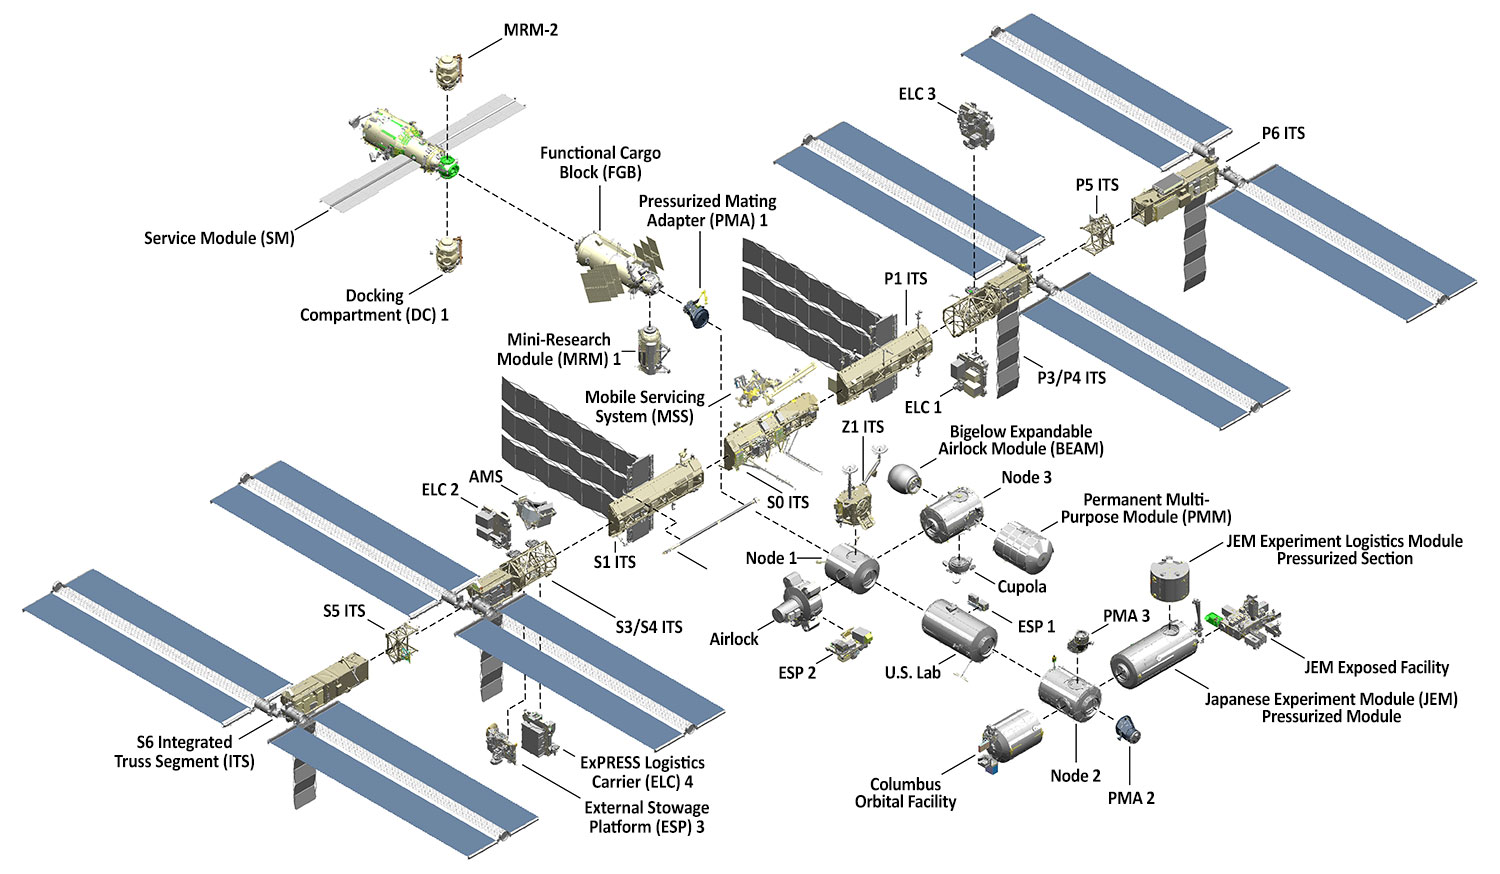 Iss Rack Configurations